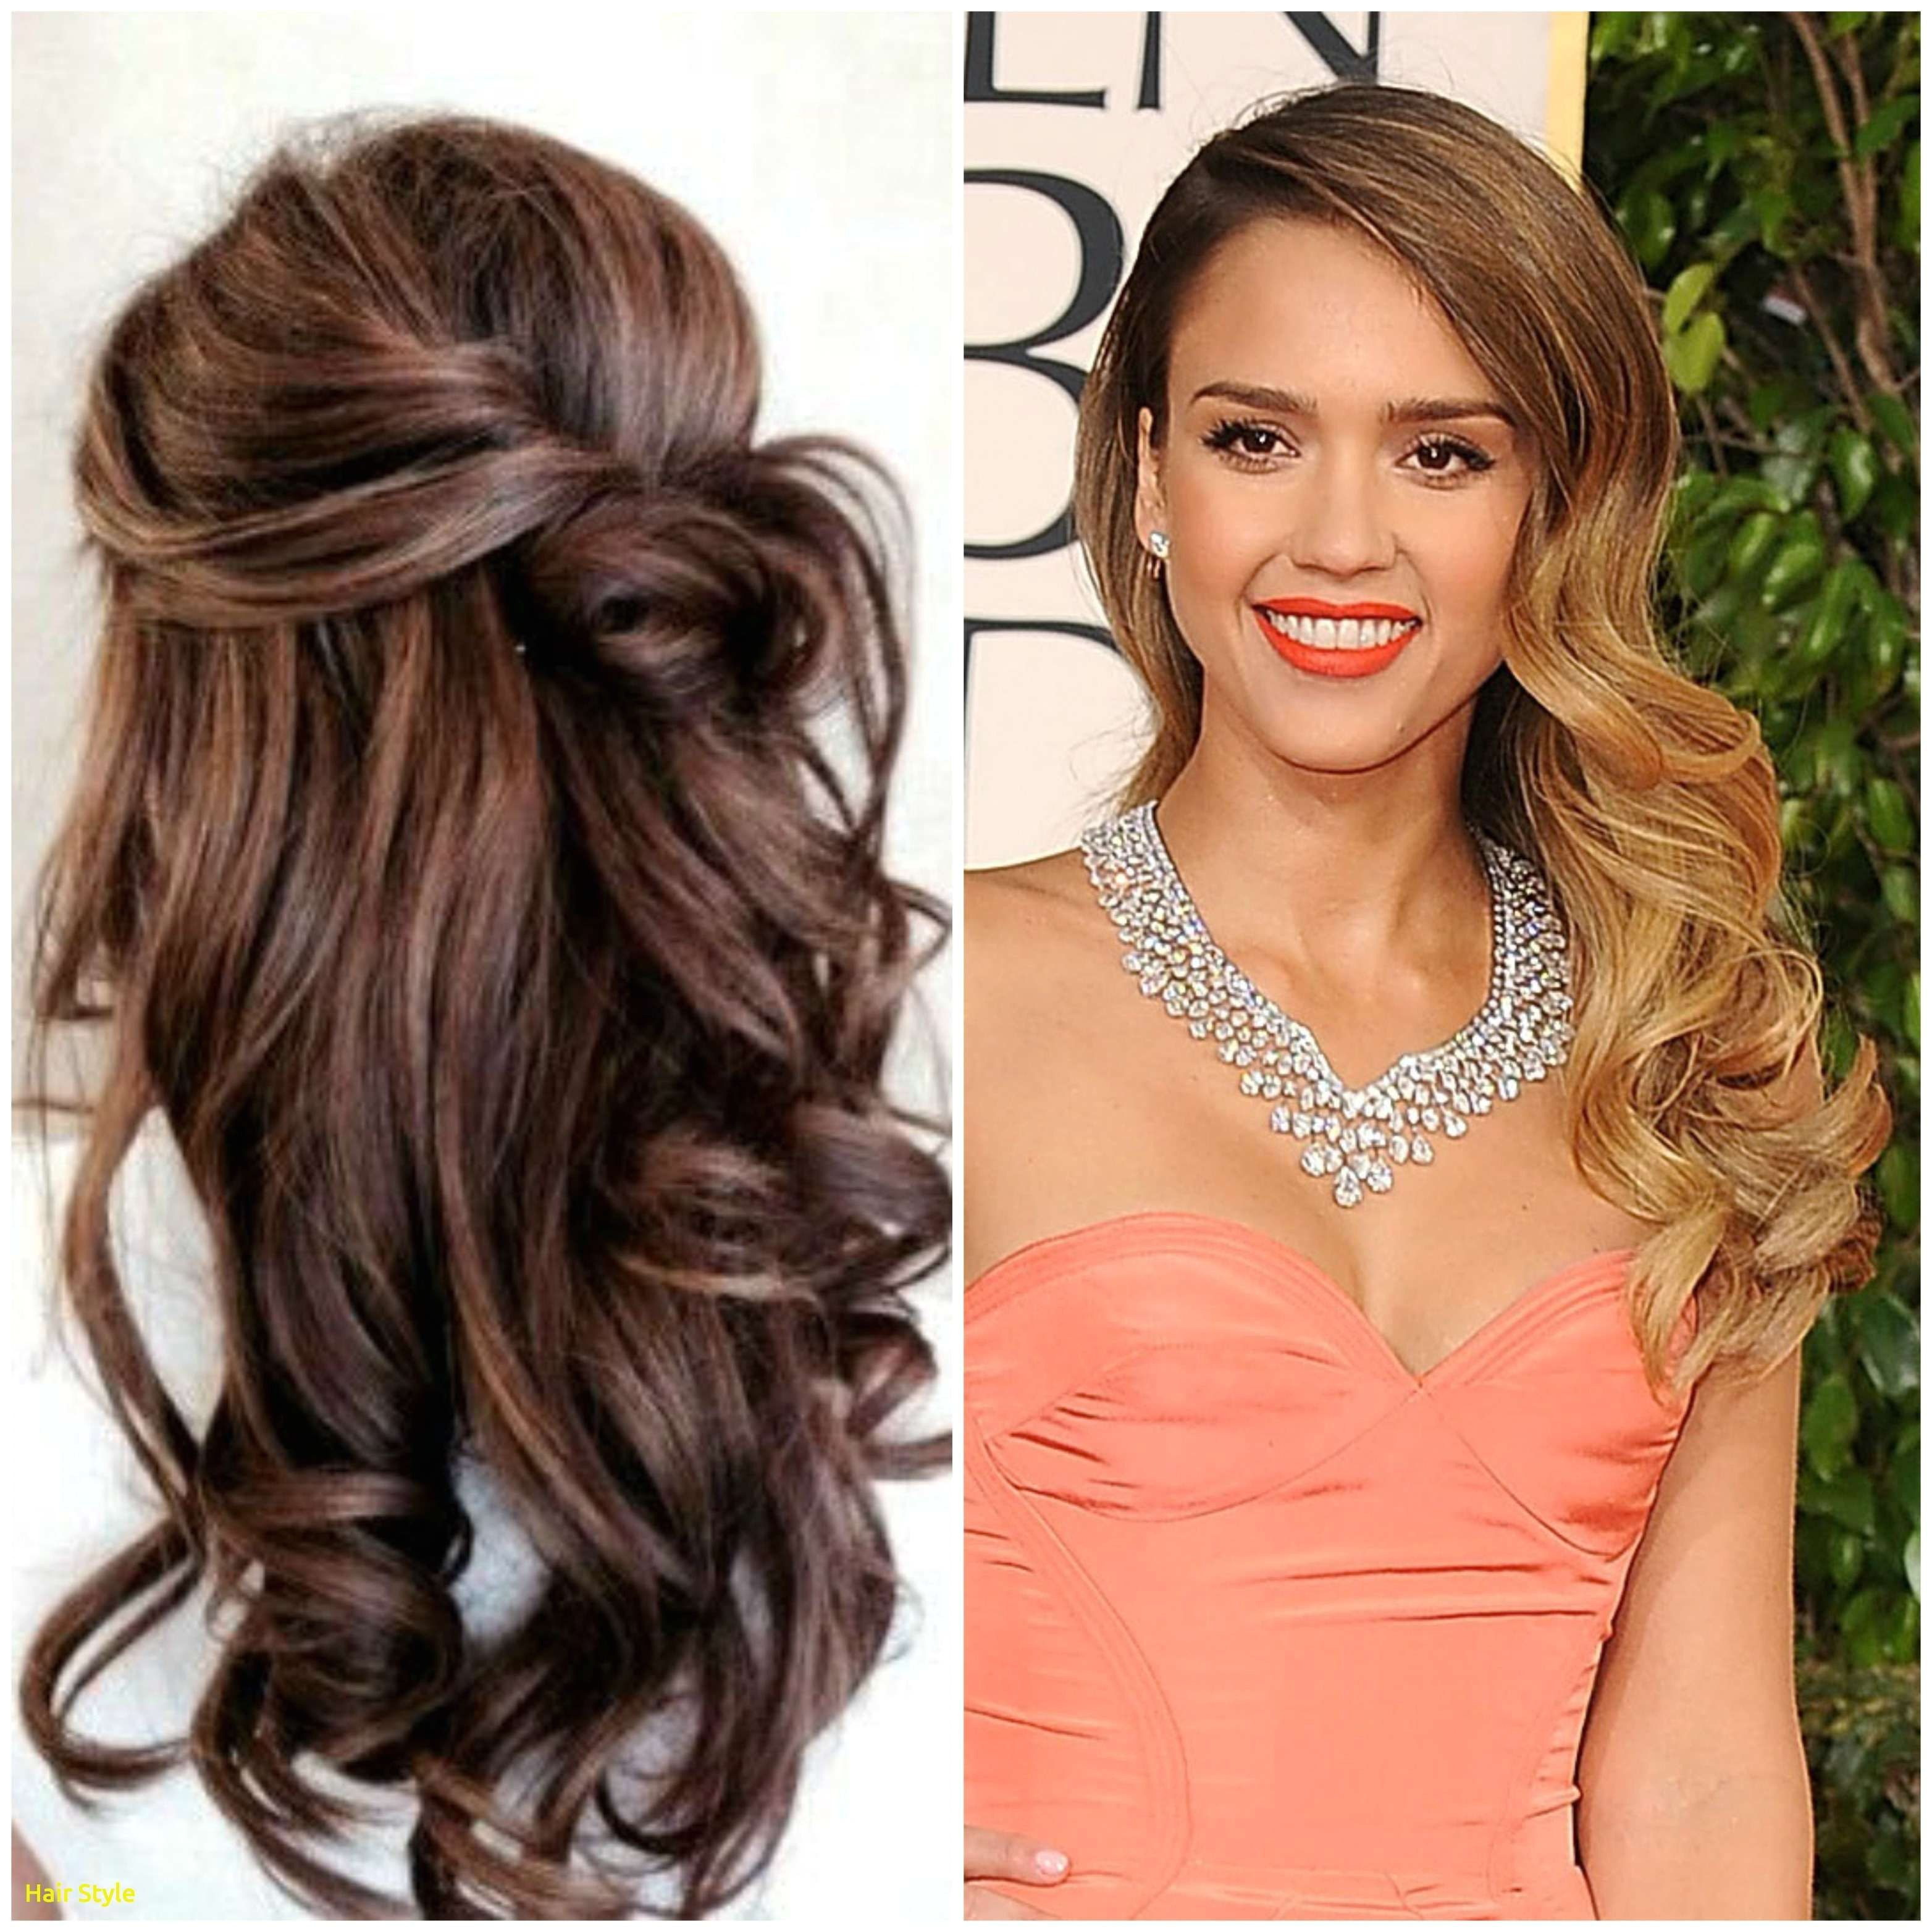 Bangs Hairstyle 2018 Luxury Best Hairstyles for Women Over 40 2018